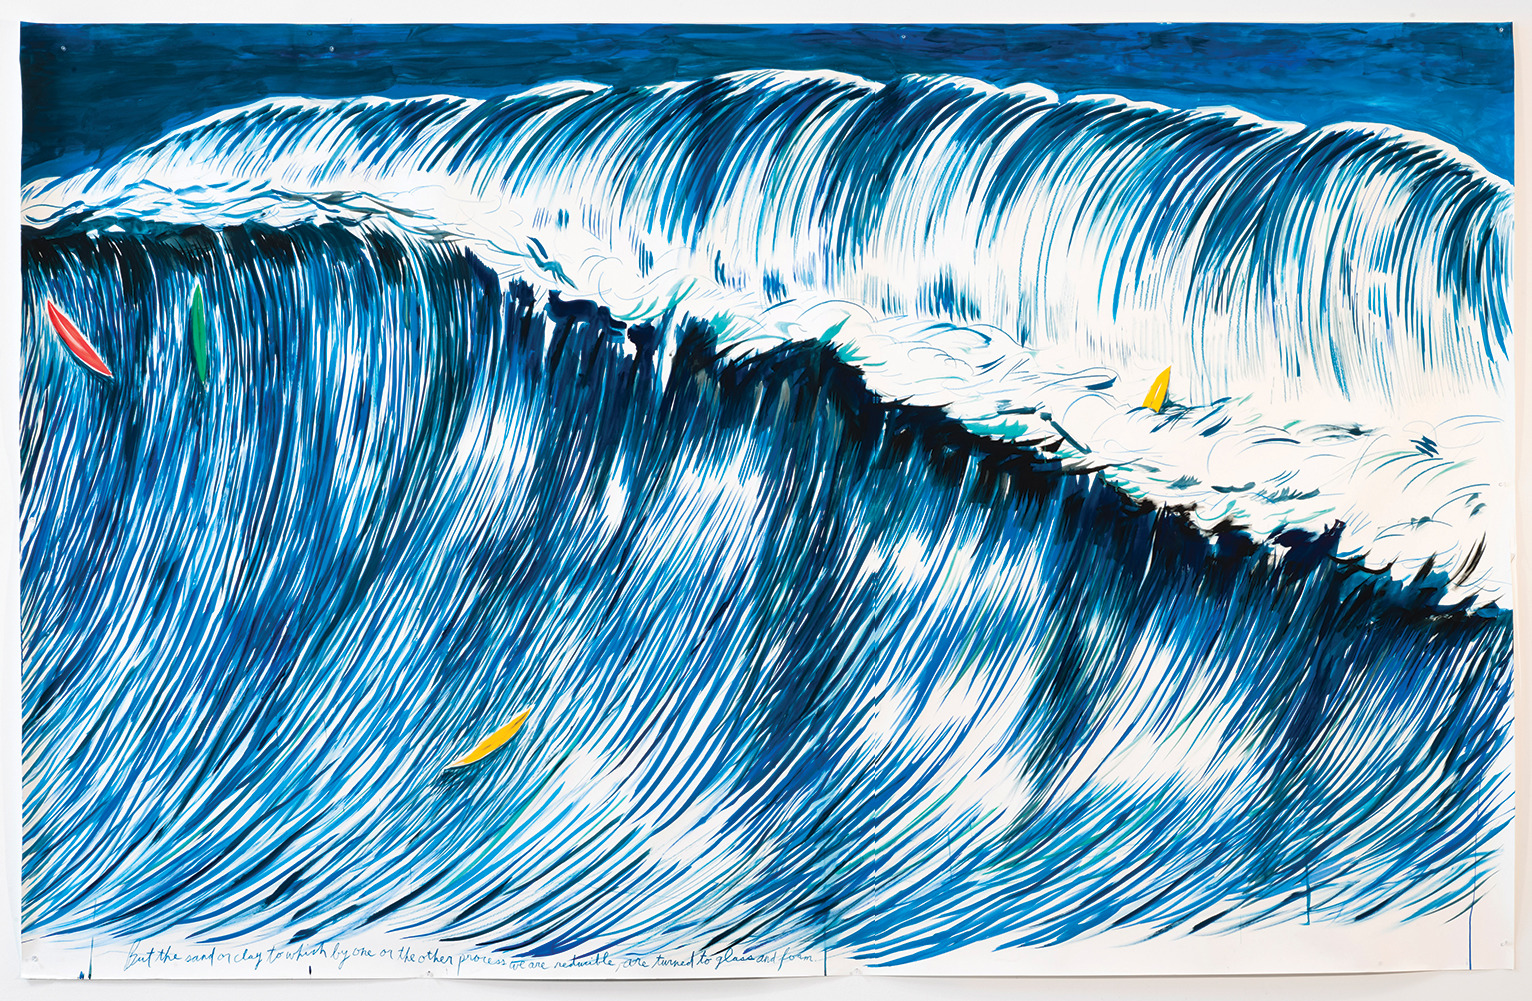 Raymond Pettibon No title (But the sand…), 2011 Acrylic, ink, and pastel on paper. 80 x 126.5 inches Courtesy of the artist and David Zwirner Galleries.